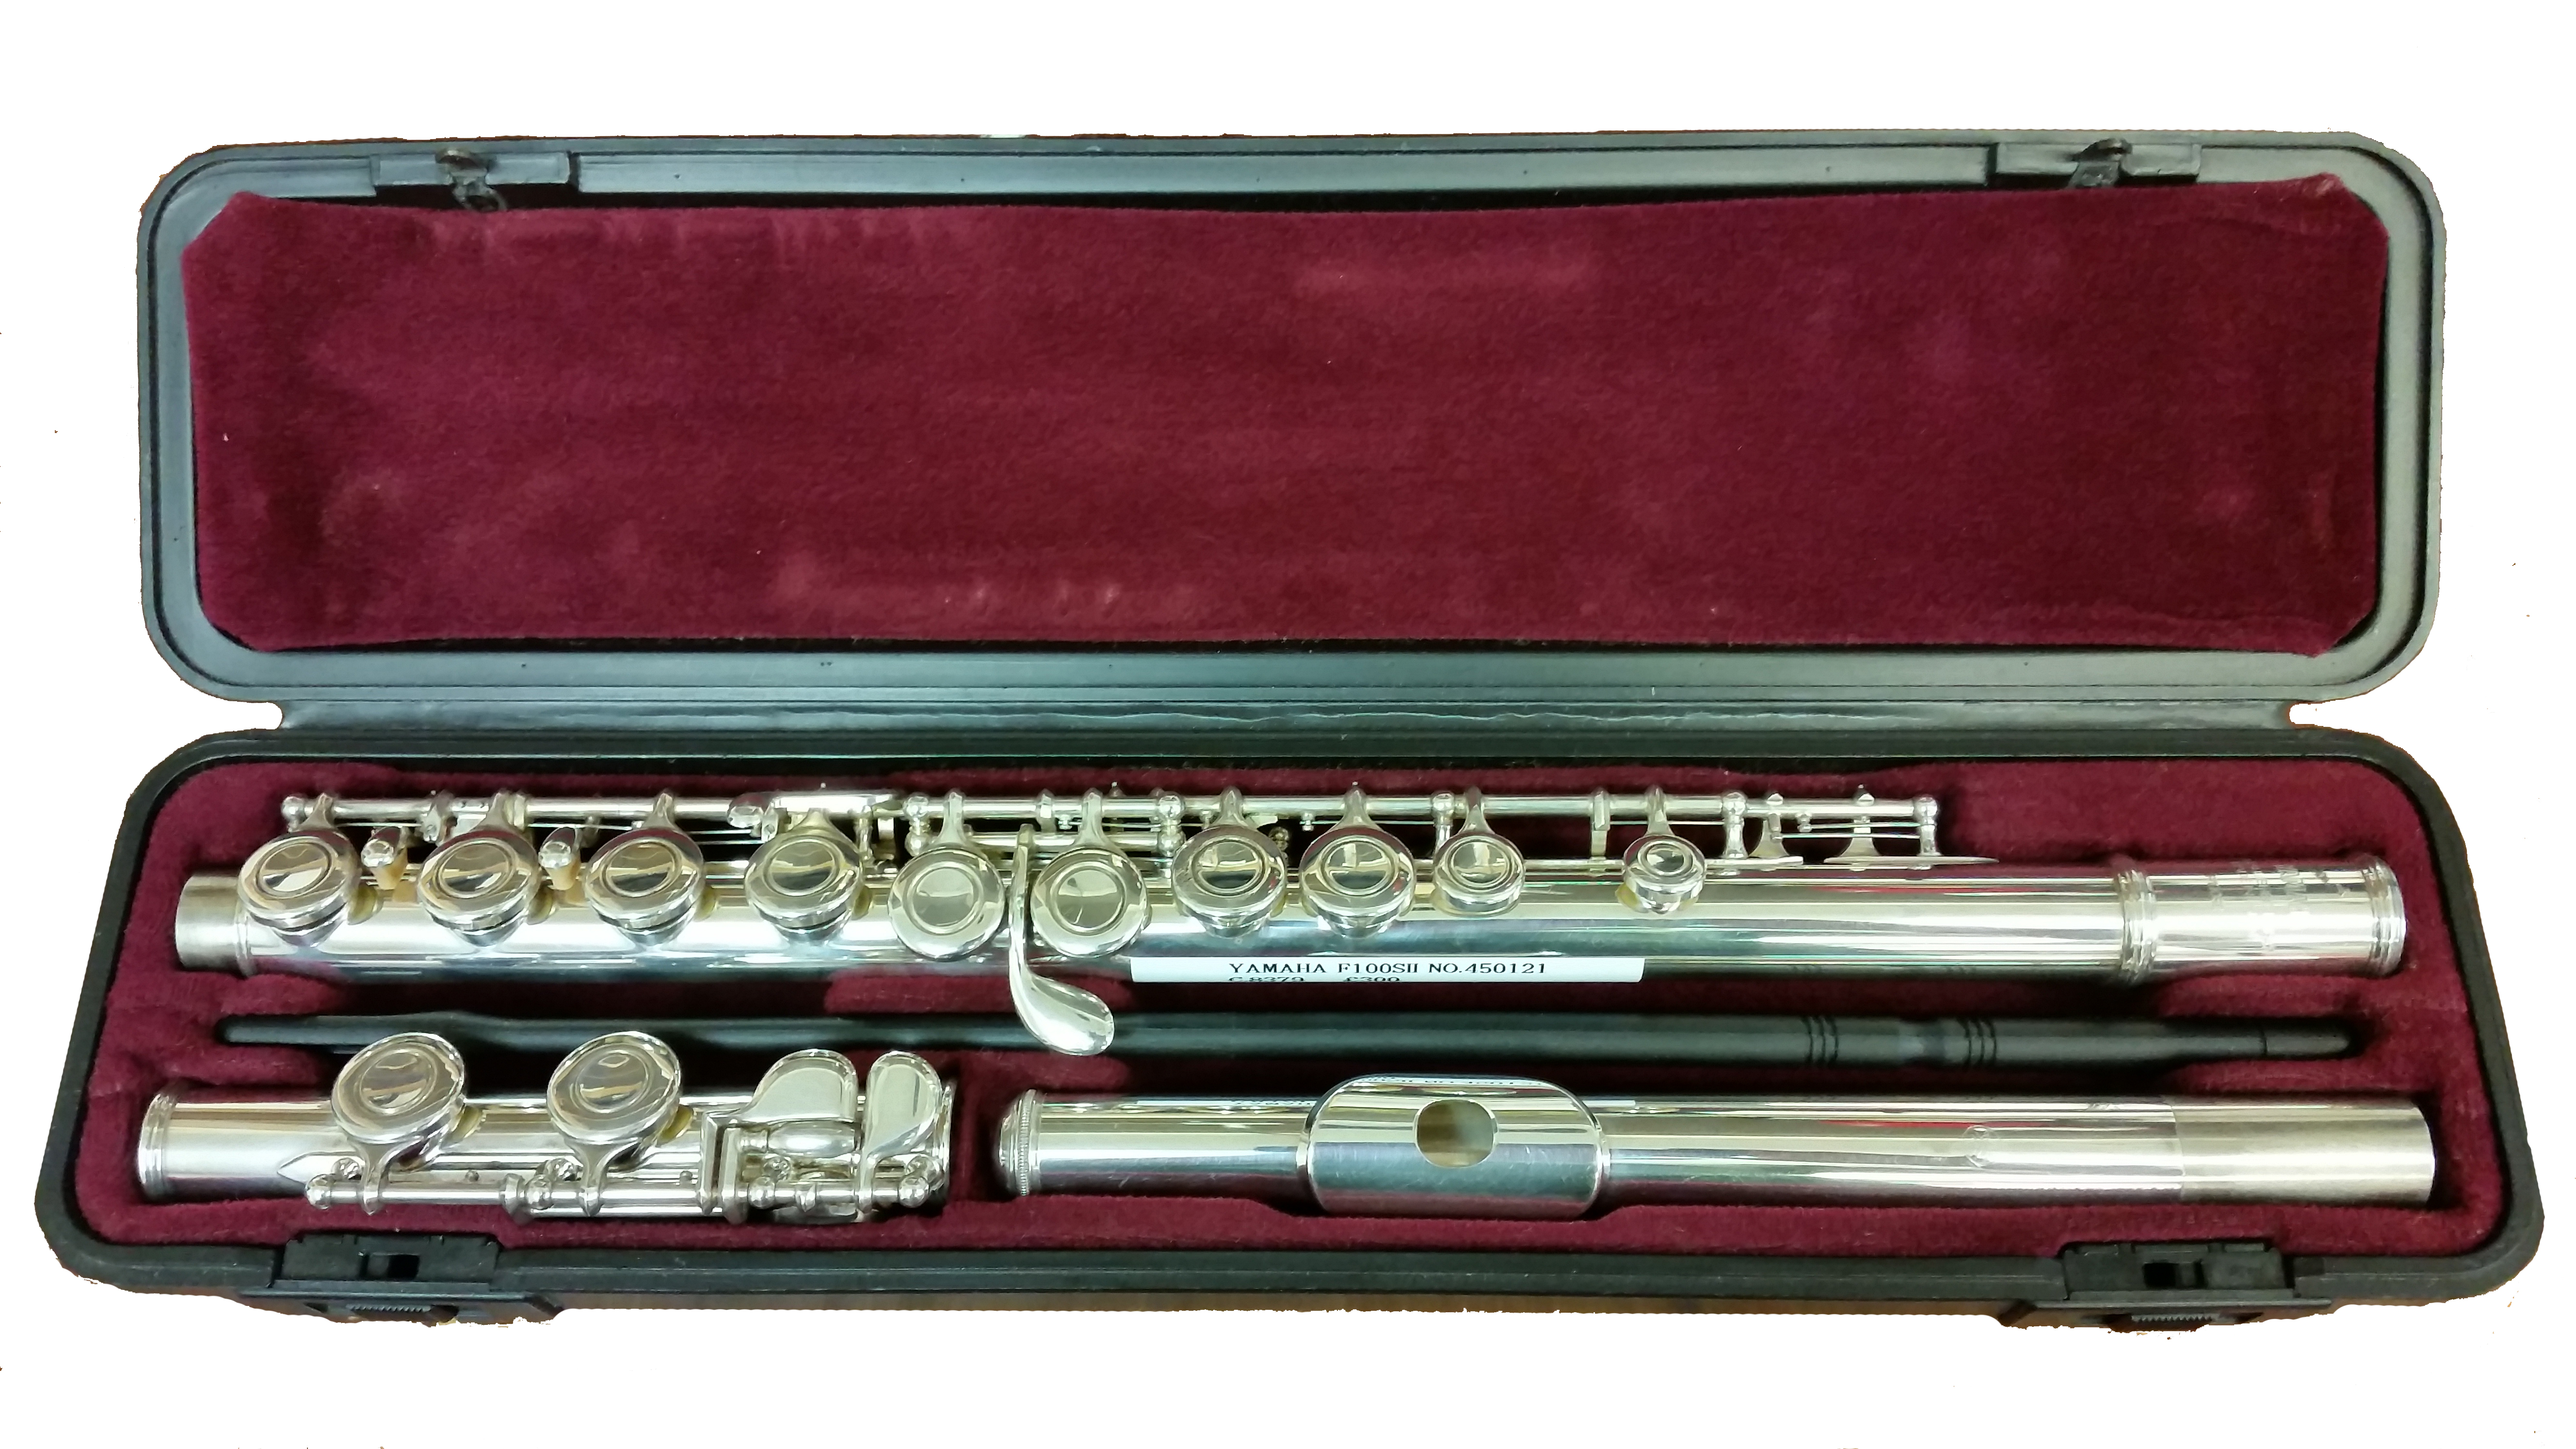 Yamaha 22s secondhand flute c8379 f1oosii model for Piccolo prices yamaha